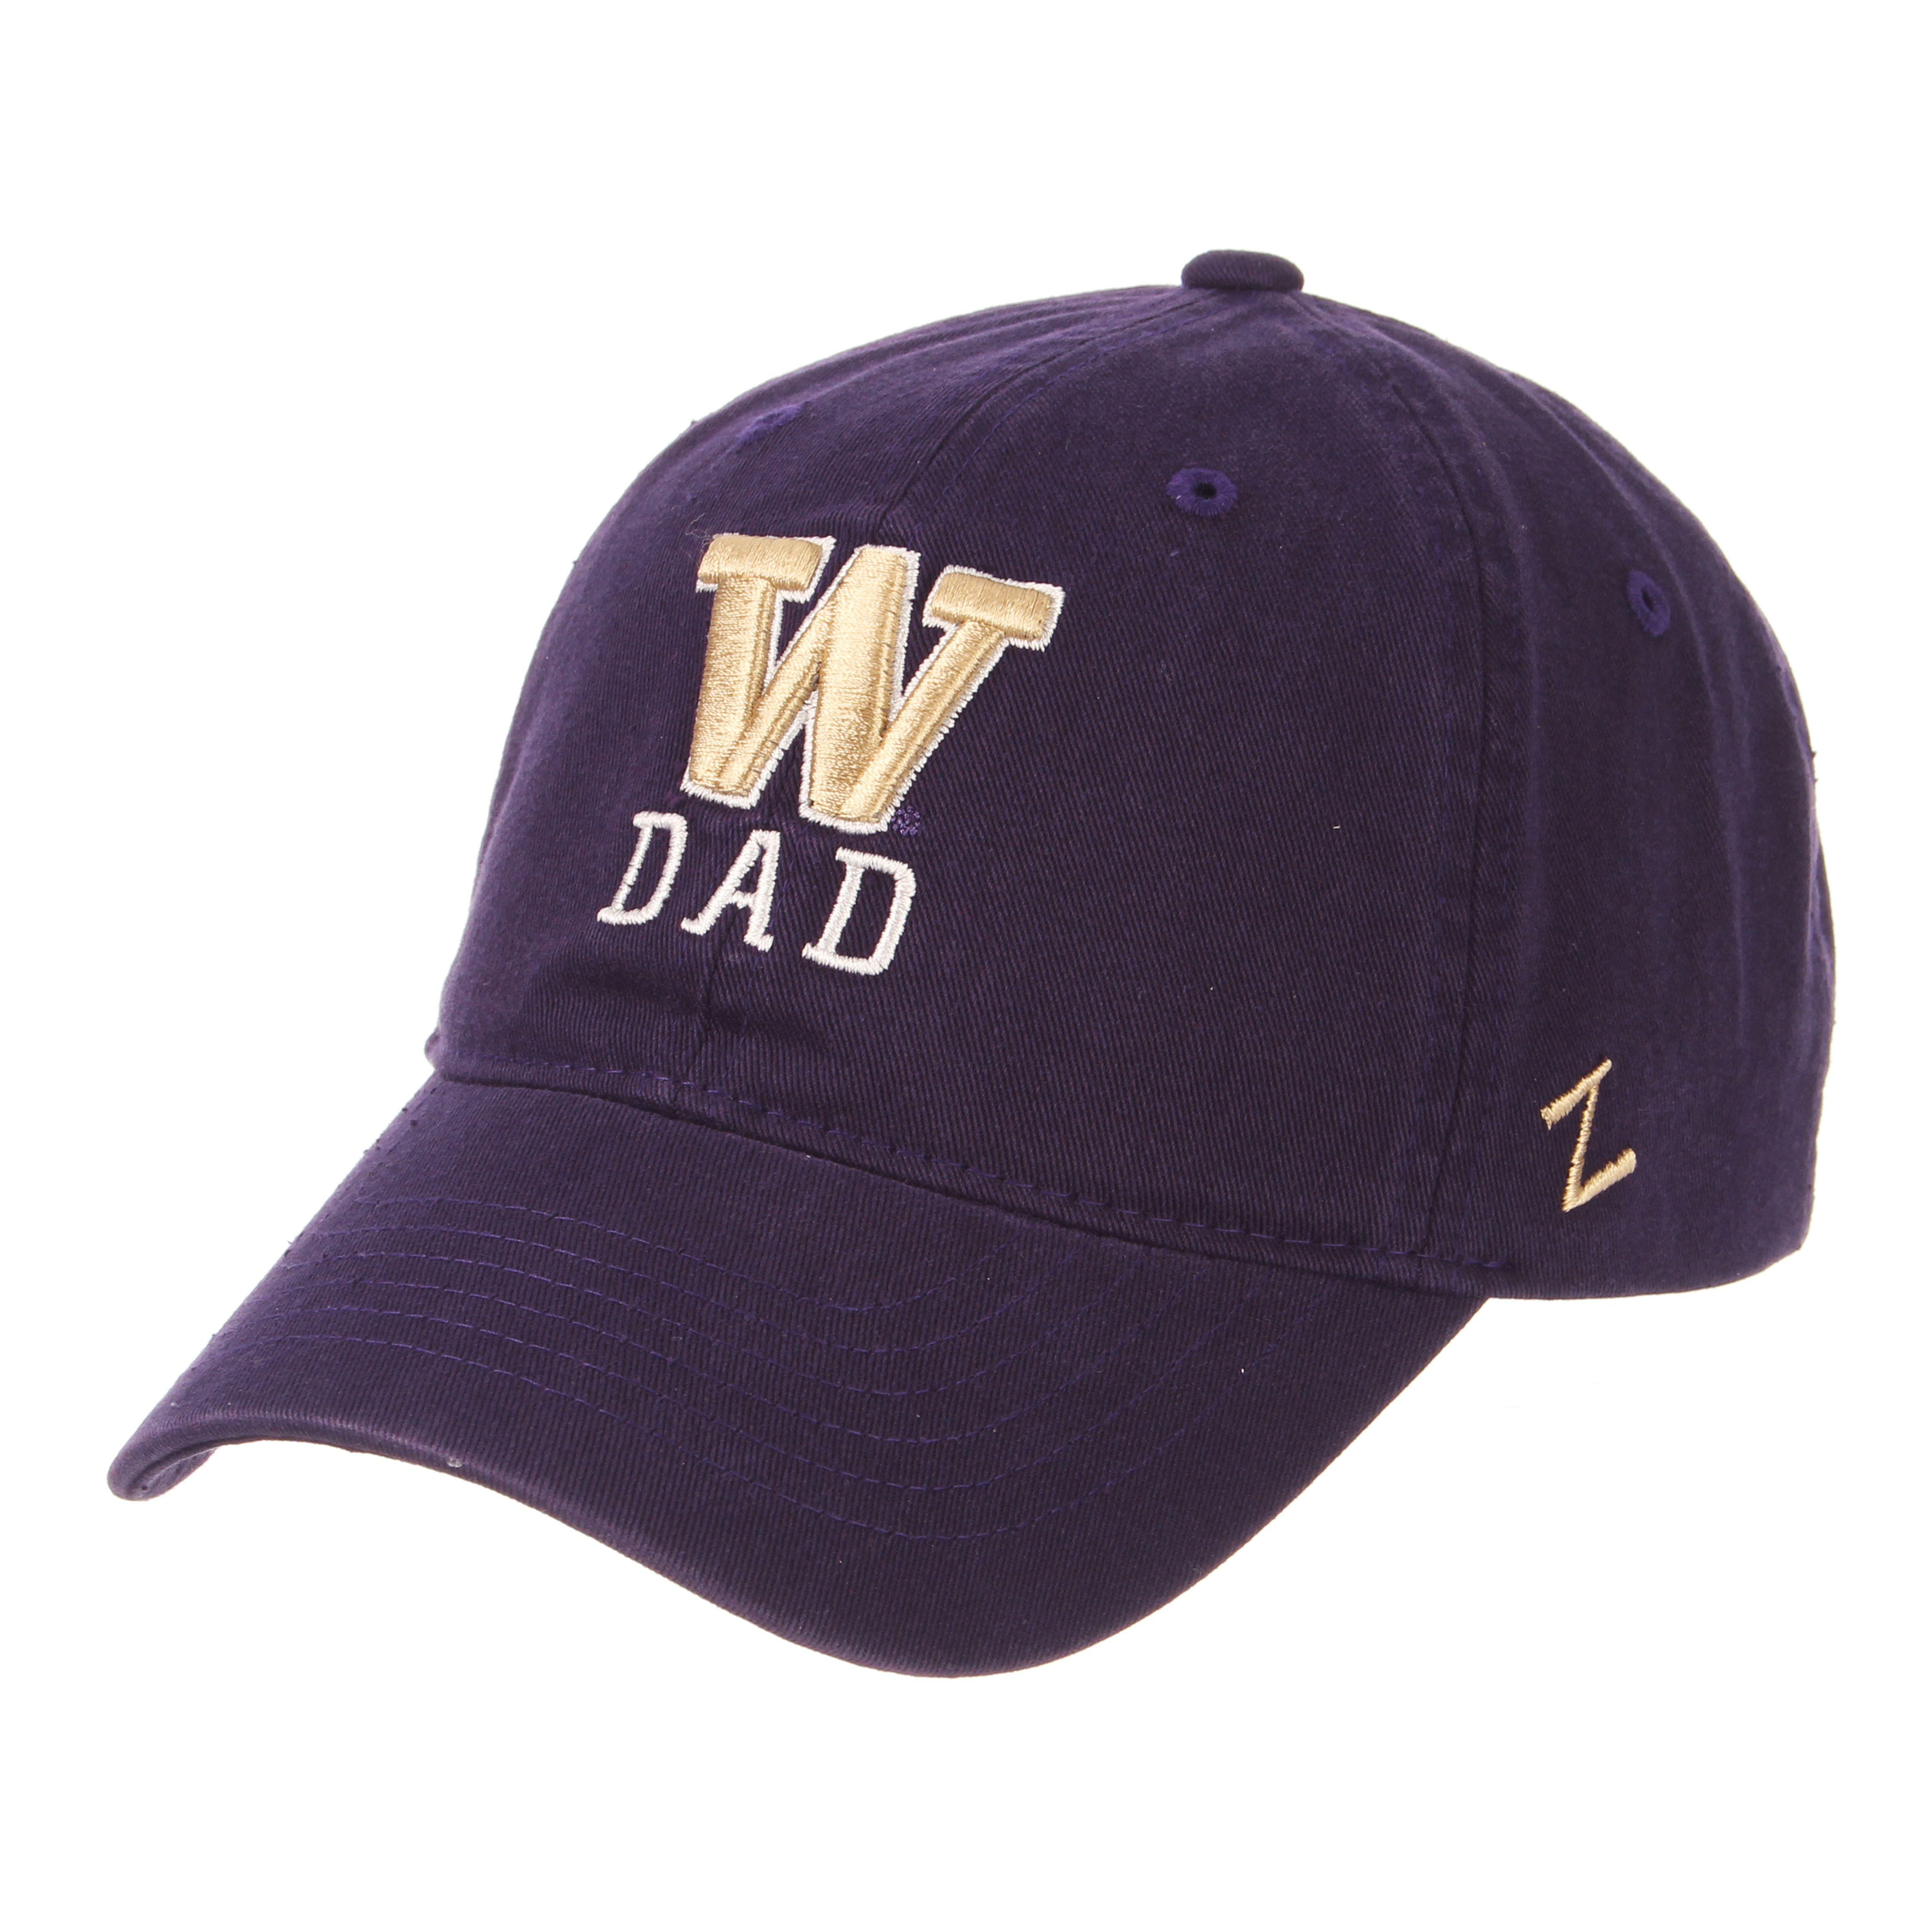 adf3e2c35f2ad Zephyr Purple Men s W Dad Scholarship Buckle Hat